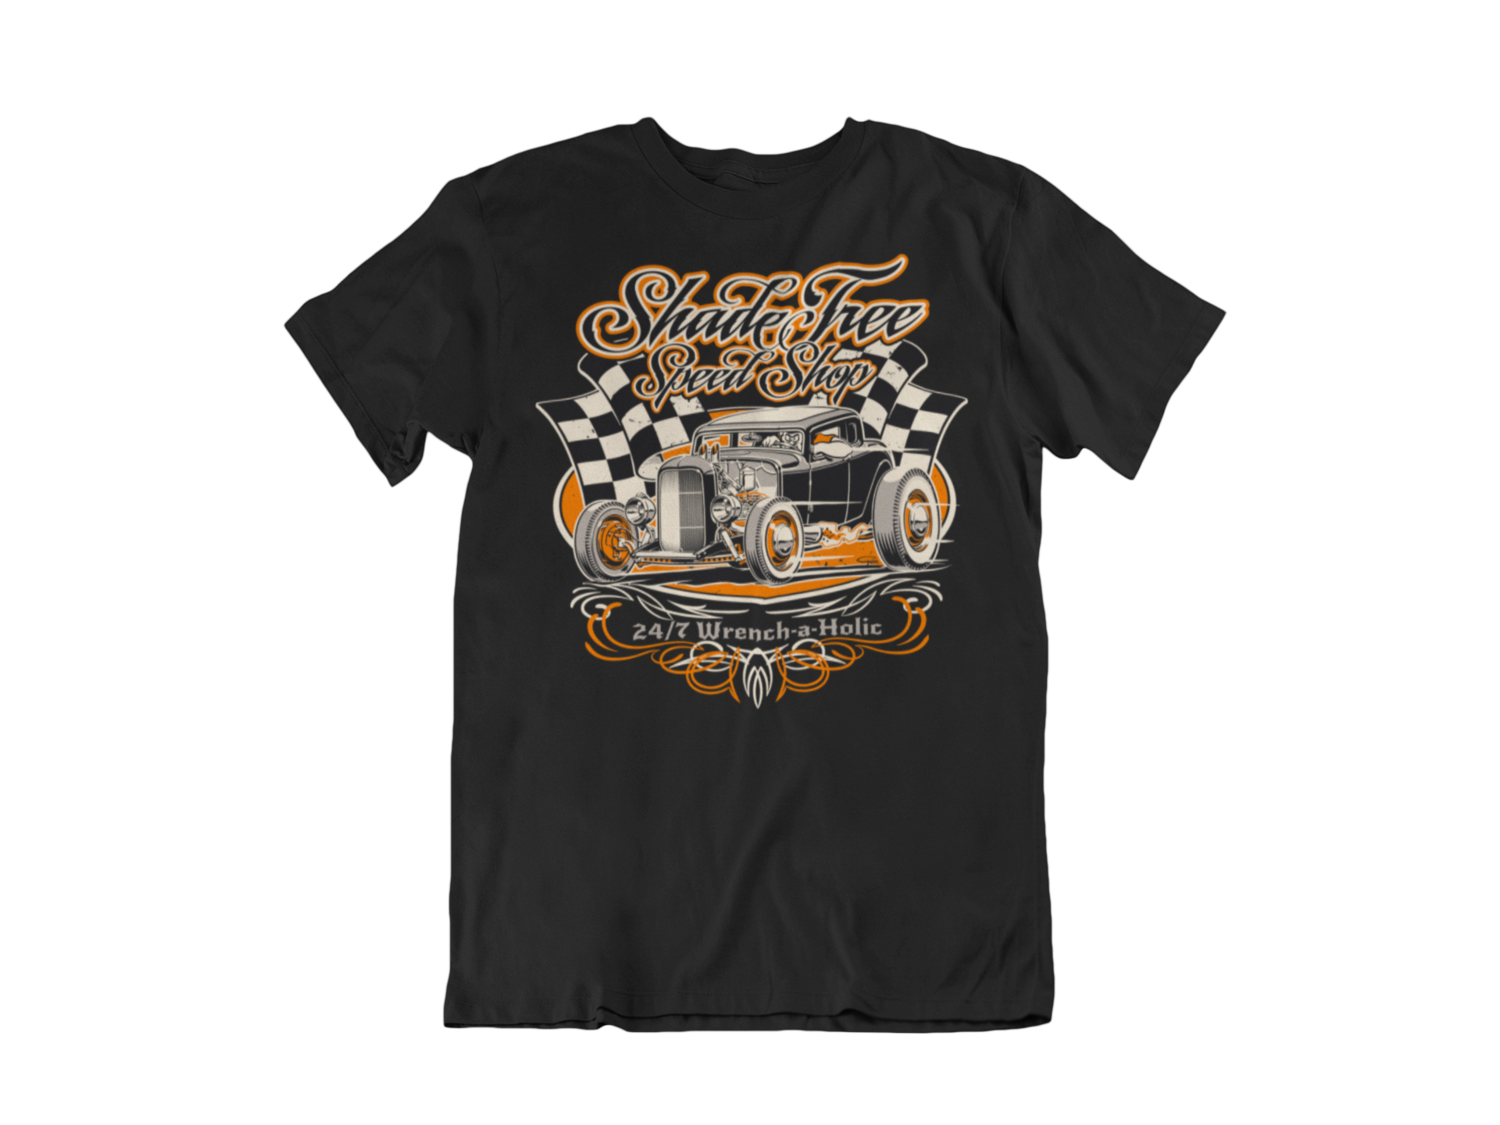 "SHADE TREE SPEED SHOP ""Deuce"" T-SHIRT MAN BY Ger ""Dutch Courage"" Peters artwork"